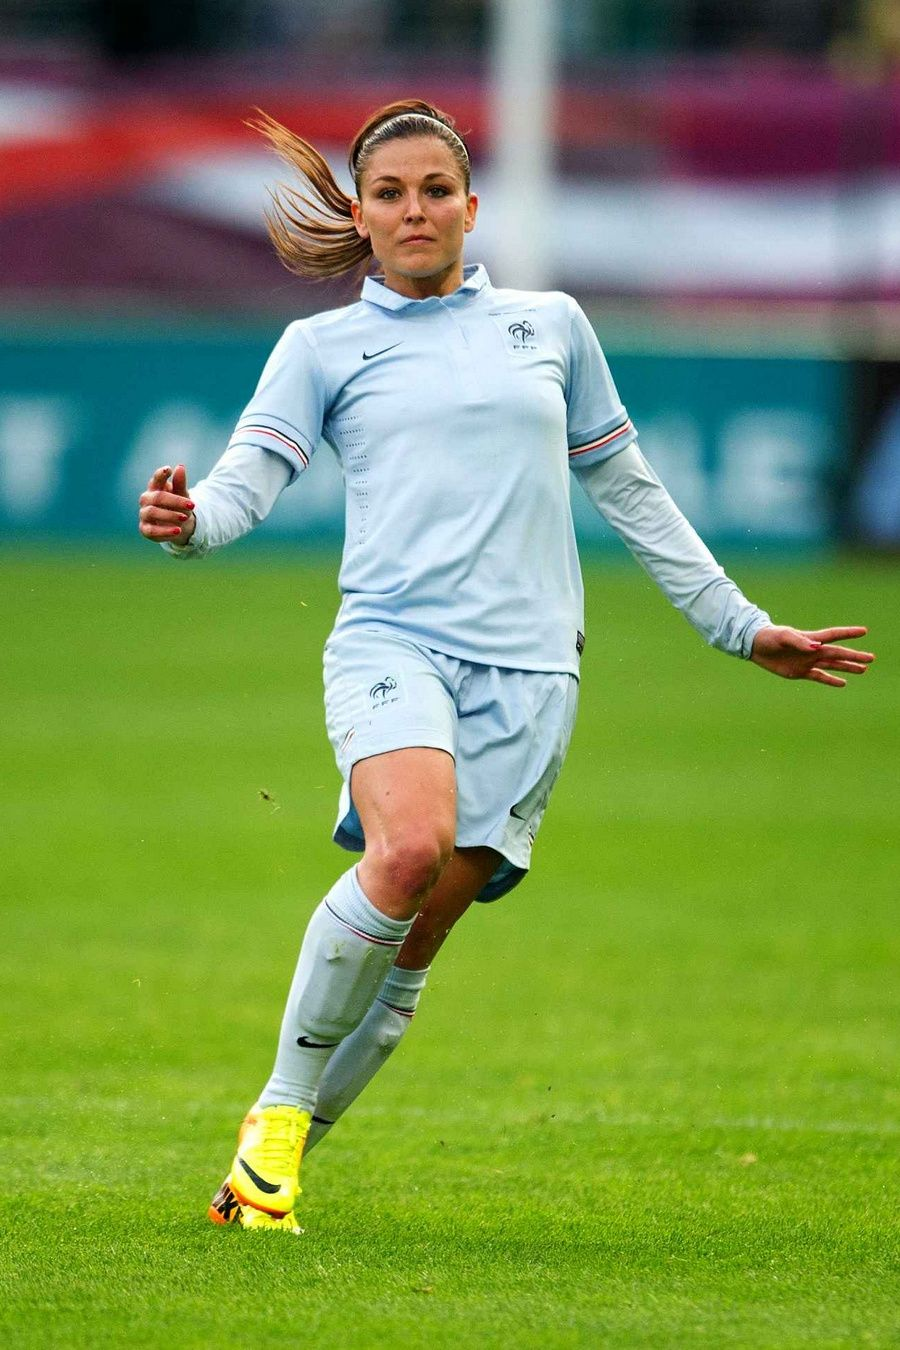 Laure Boulleau France In A Friendly Match In 2013 Football